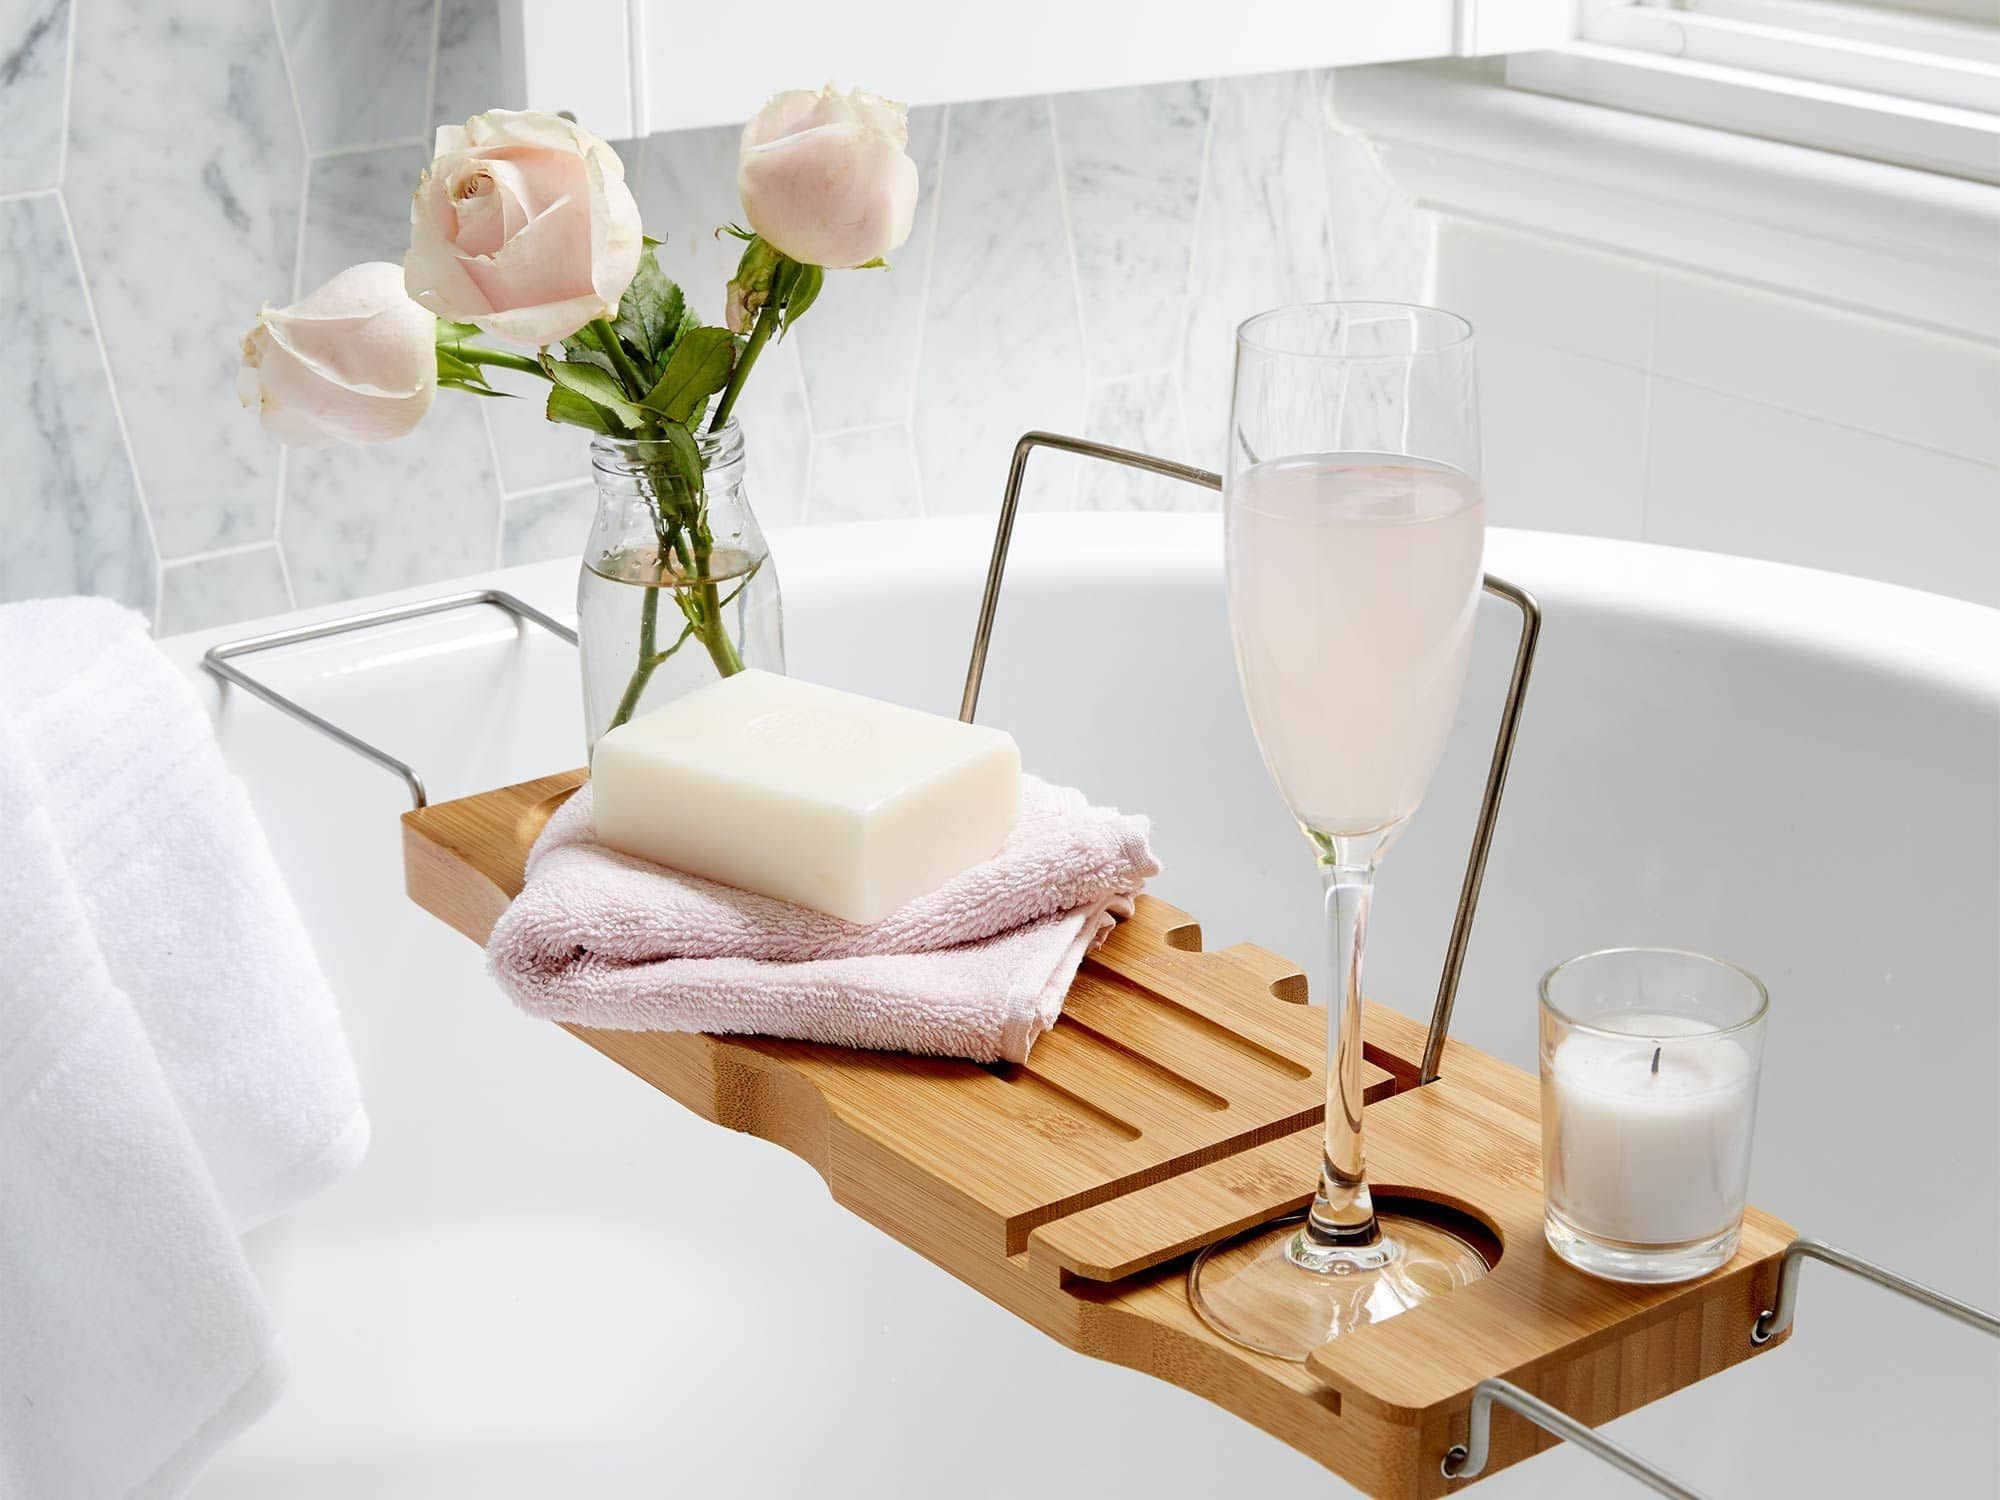 kmart bath caddy styled with flower and wine